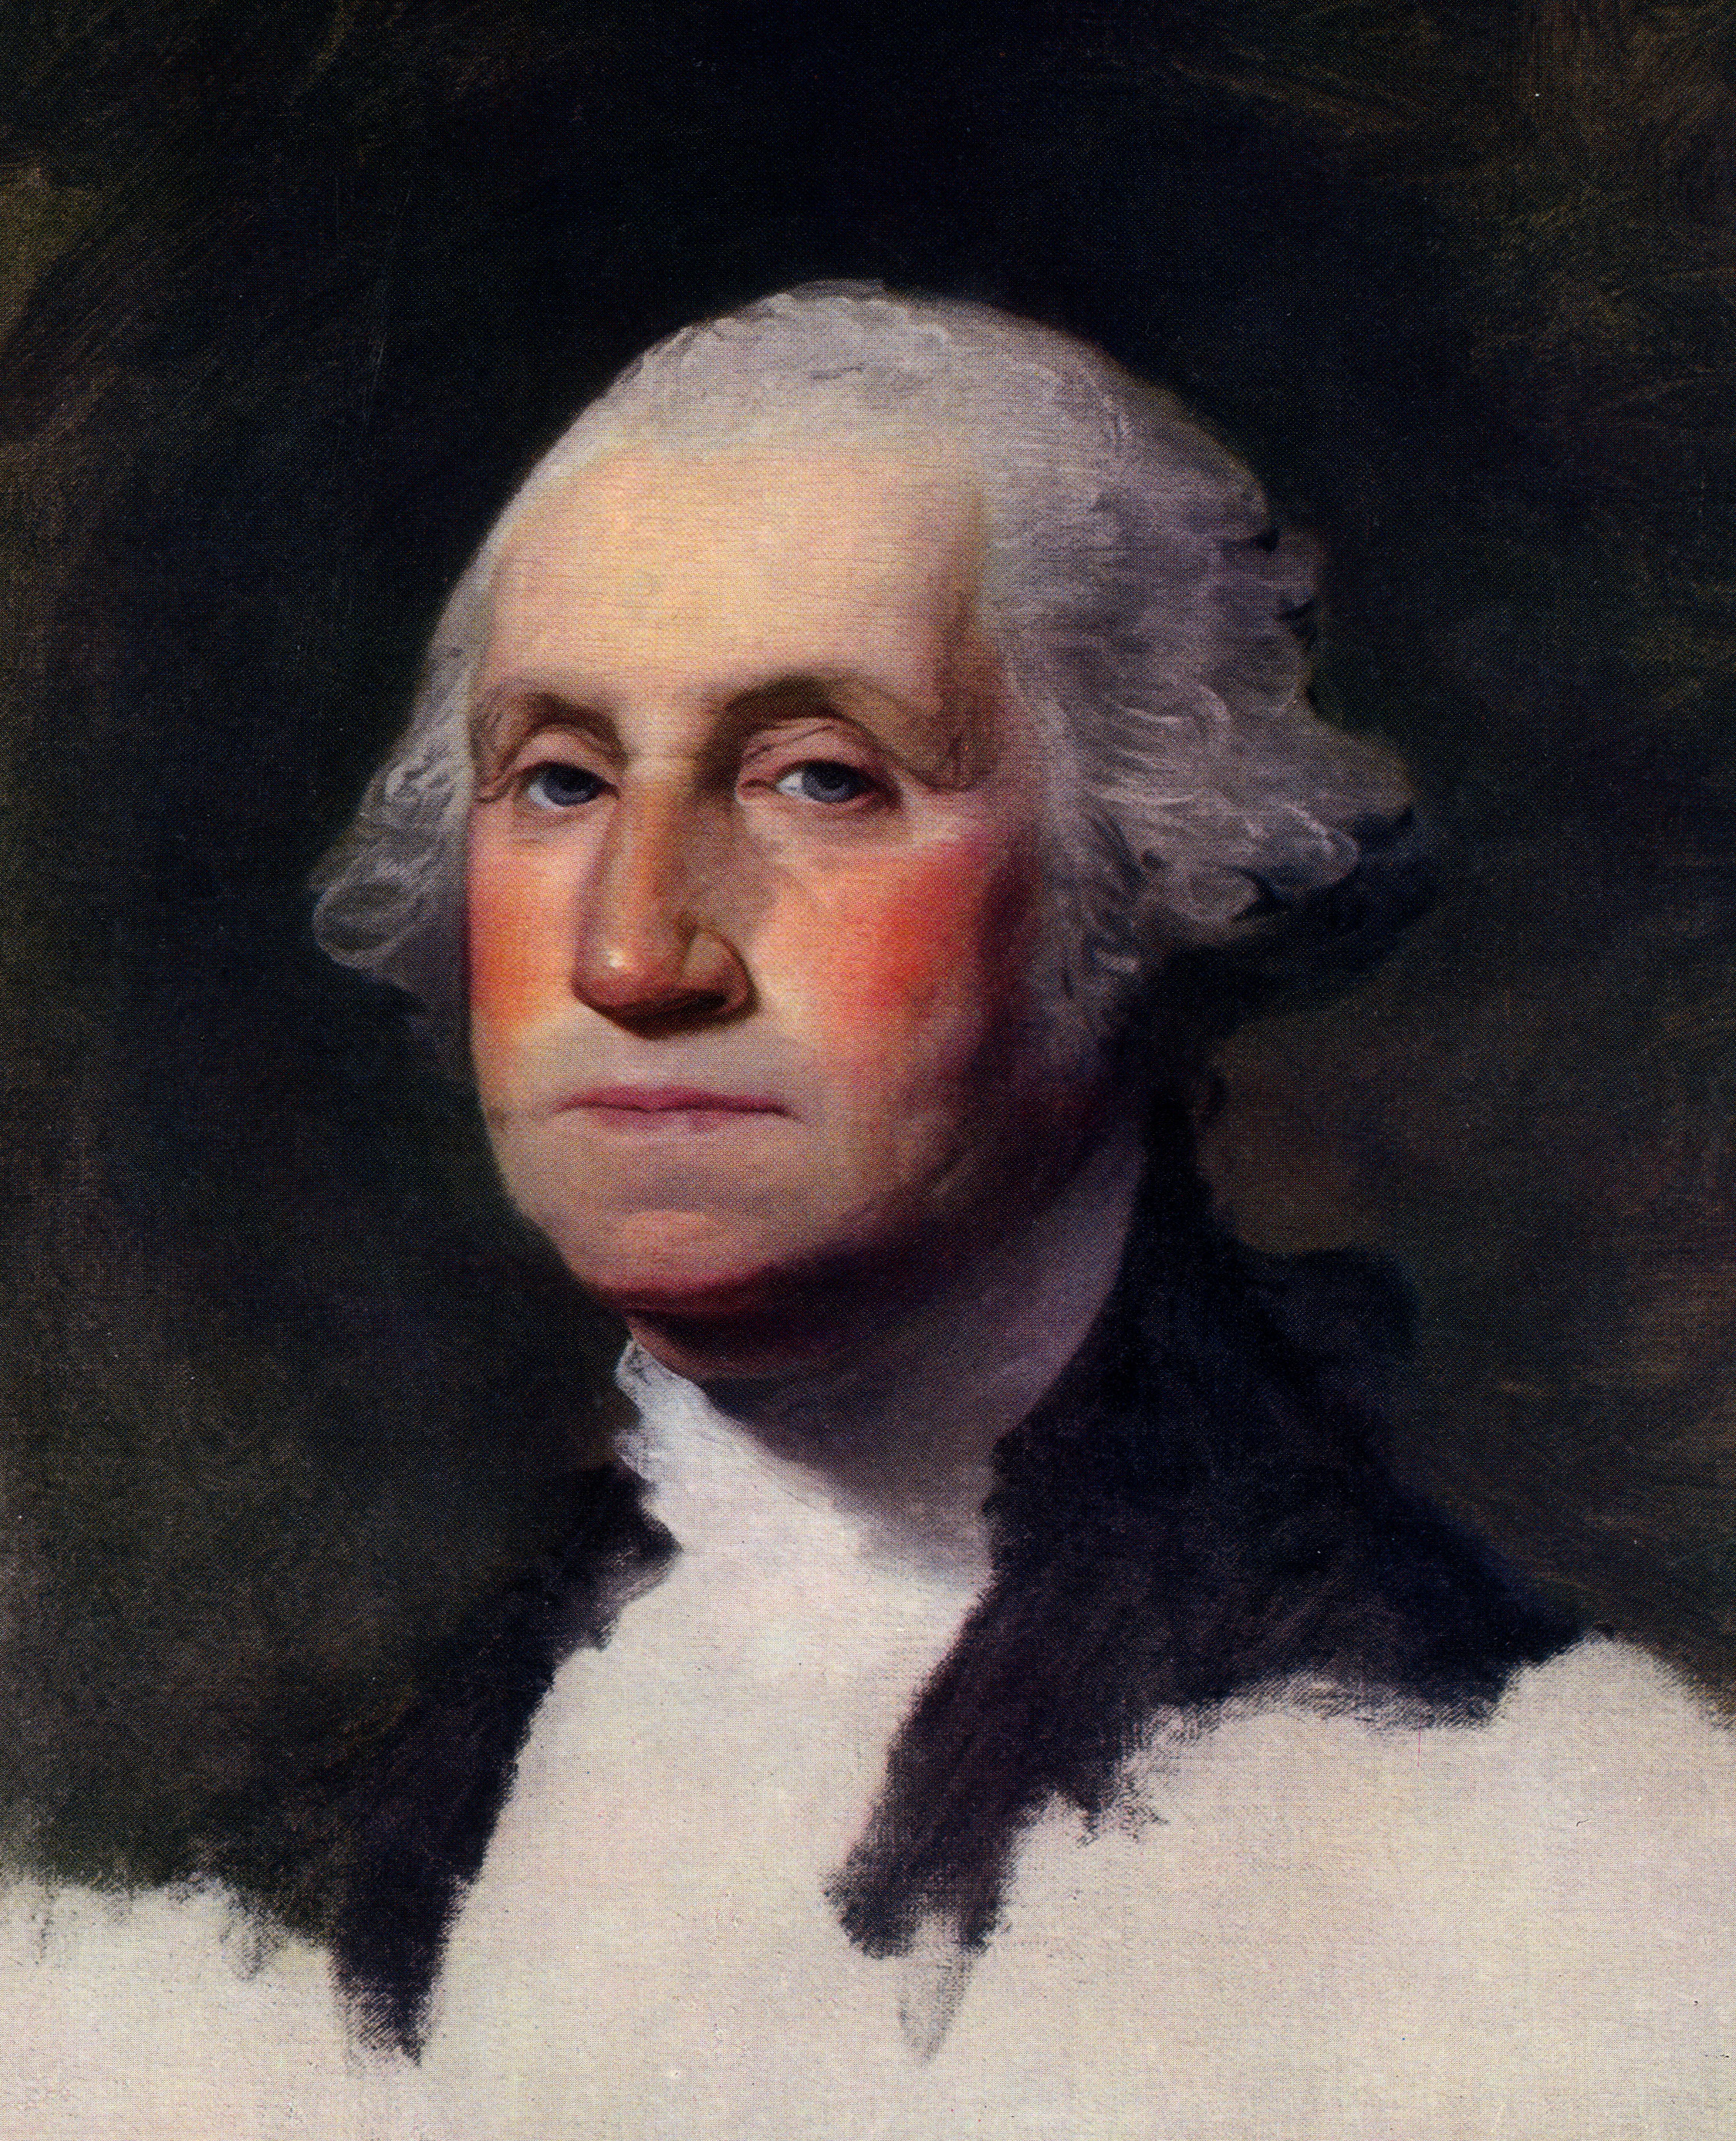 Gilbert stuart s 1796 oil painting portrait of george washington